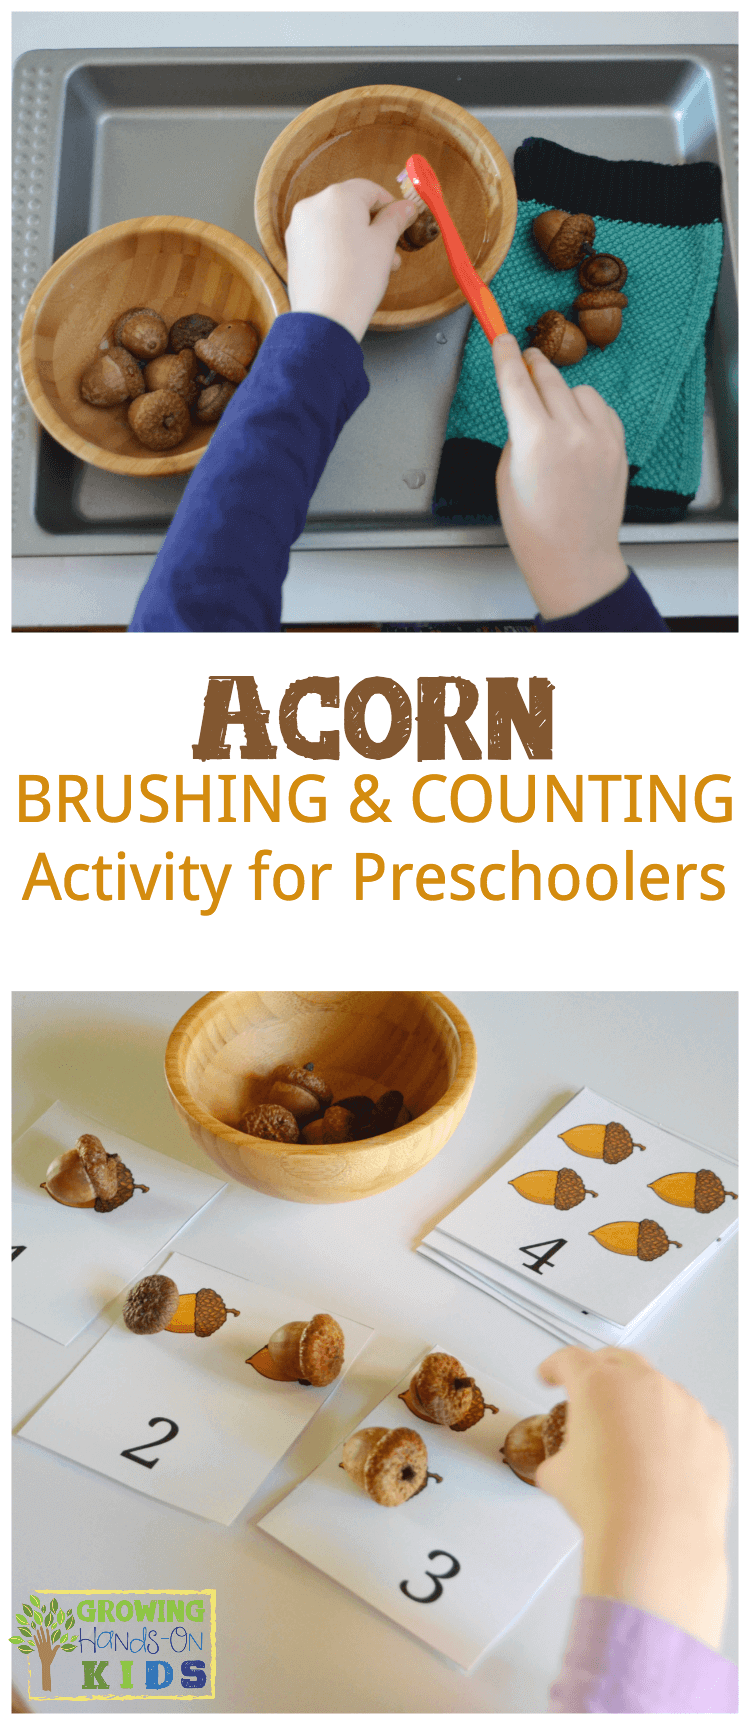 Acorn brushing and counting activity for preschoolers, the perfect fall/autumn activity with real acorns.